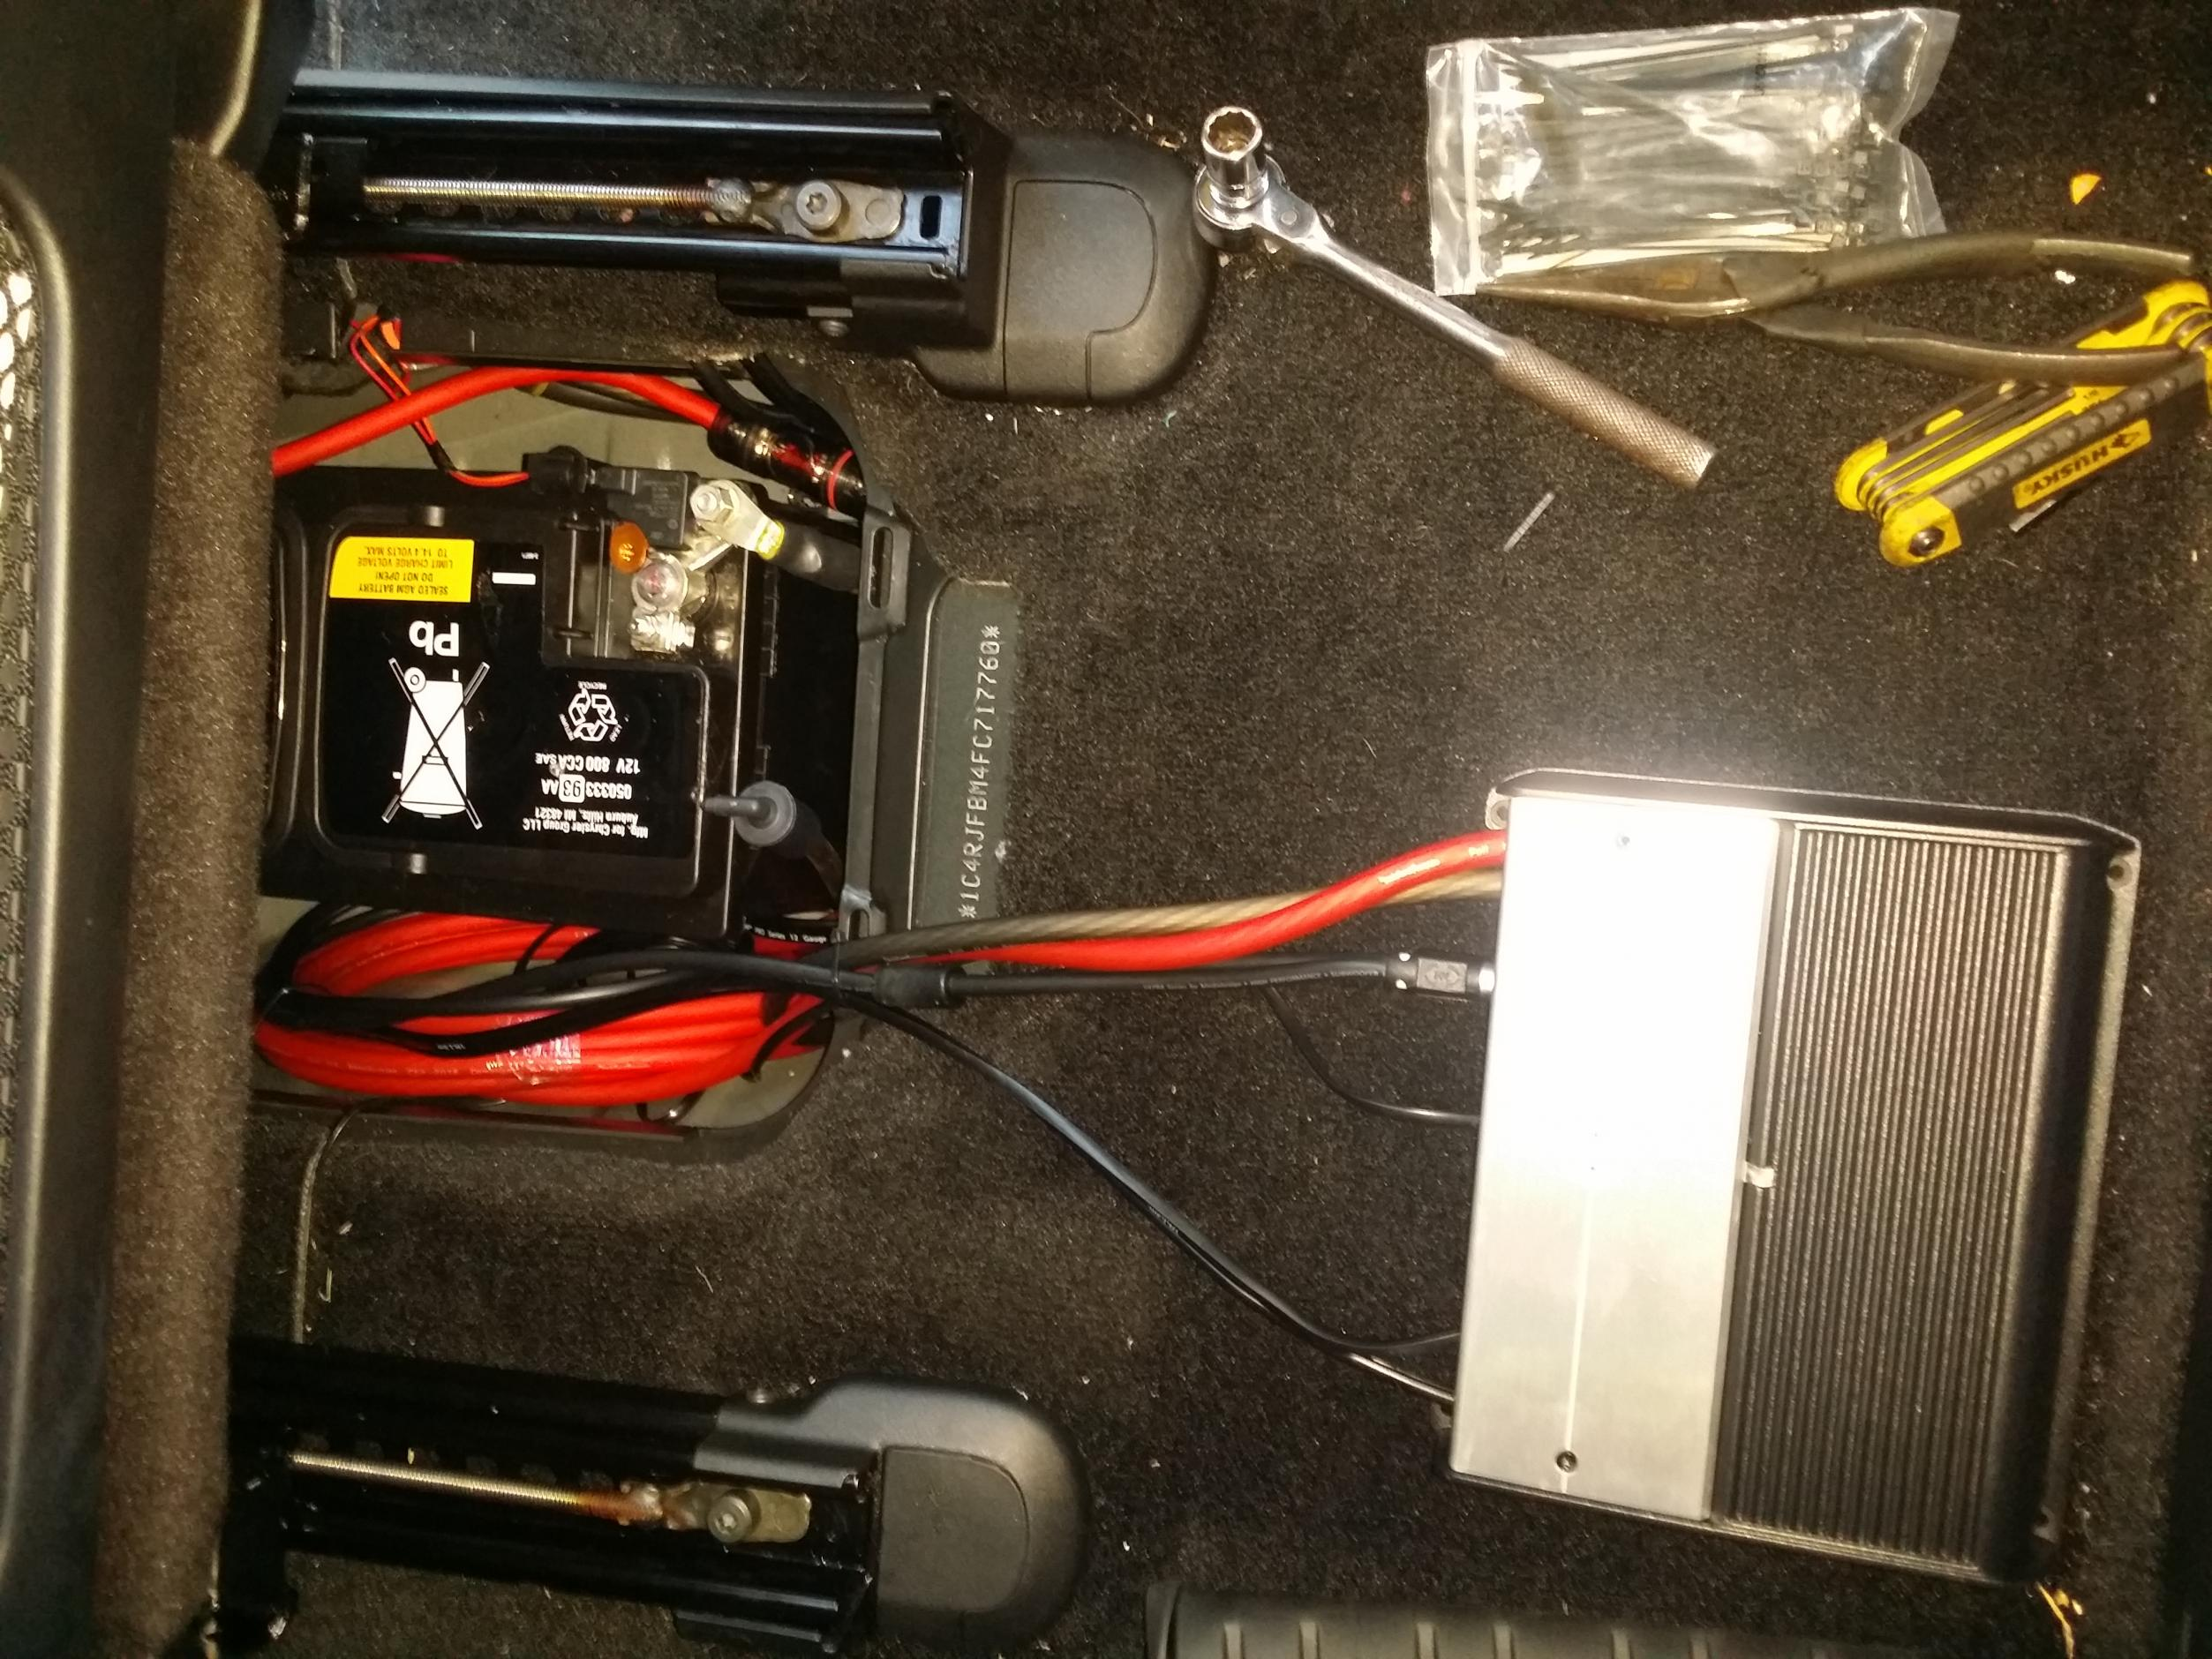 JL Audio Stealthbox and Amp Install - Detailed Photos and ... on guitar amplifier wiring diagram, 6 channel marine amplifier wiring, 5 1 kenwood amplifier wiring diagram, 6 channel car amplifier, receiver wiring diagram, bose subwoofer wiring diagram, 5 channel amplifier wiring diagram, 4 channel amp diagram, 4 ohm subwoofer wiring diagram, 2006 ml350 amplifier wiring diagram, 2 channel amp diagram, car sub amp wire diagram, jl marine amplifier wiring diagram, 6 channel amp installation, boat battery charger wiring diagram, amplifier and subwoofer wiring diagram,